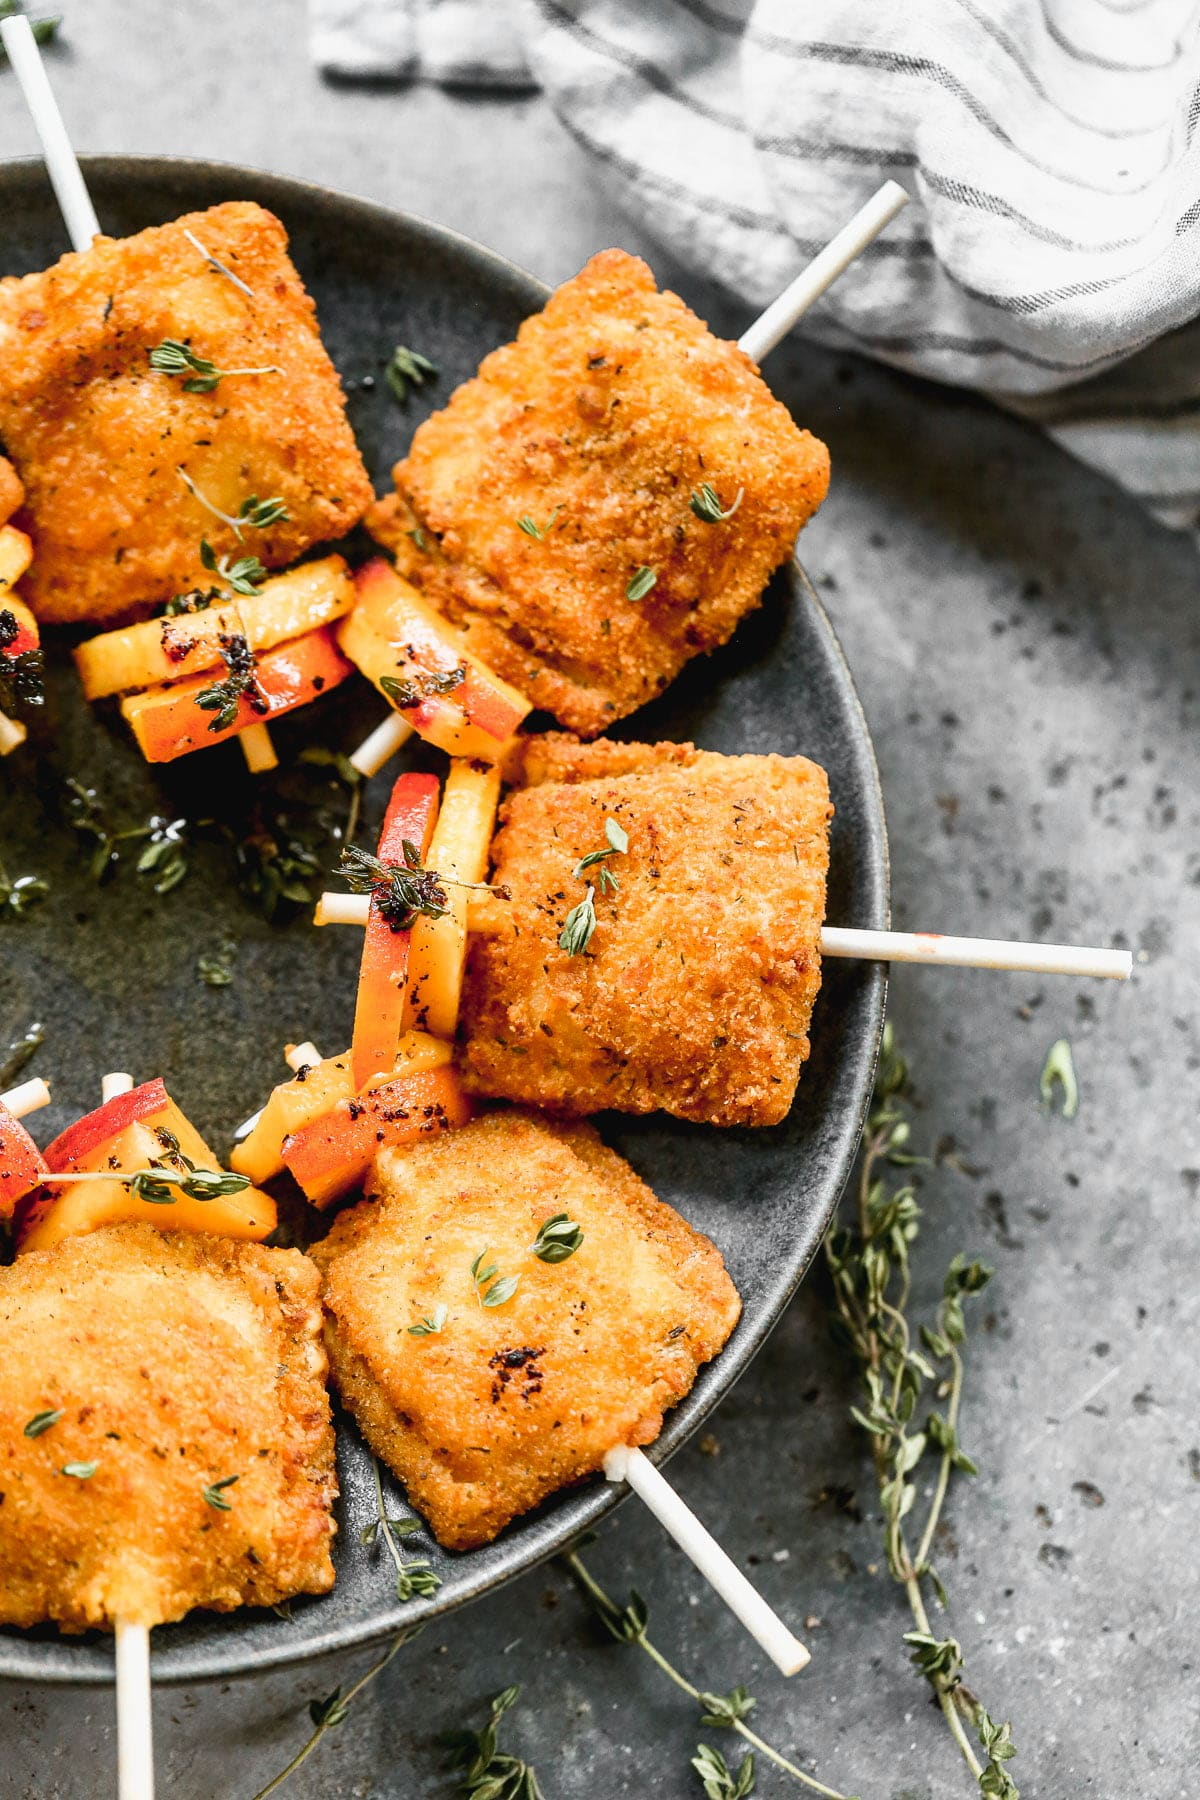 Cocktail hour just got infinitely easier and more delicious with our Peach Toasted Ravioli Pops. We throw crispy ravioli on a cocktail stick with the ripest summer peaches, drizzle each one with brown butter and thyme infused honey and serve it up with our favoirte chilled rose.